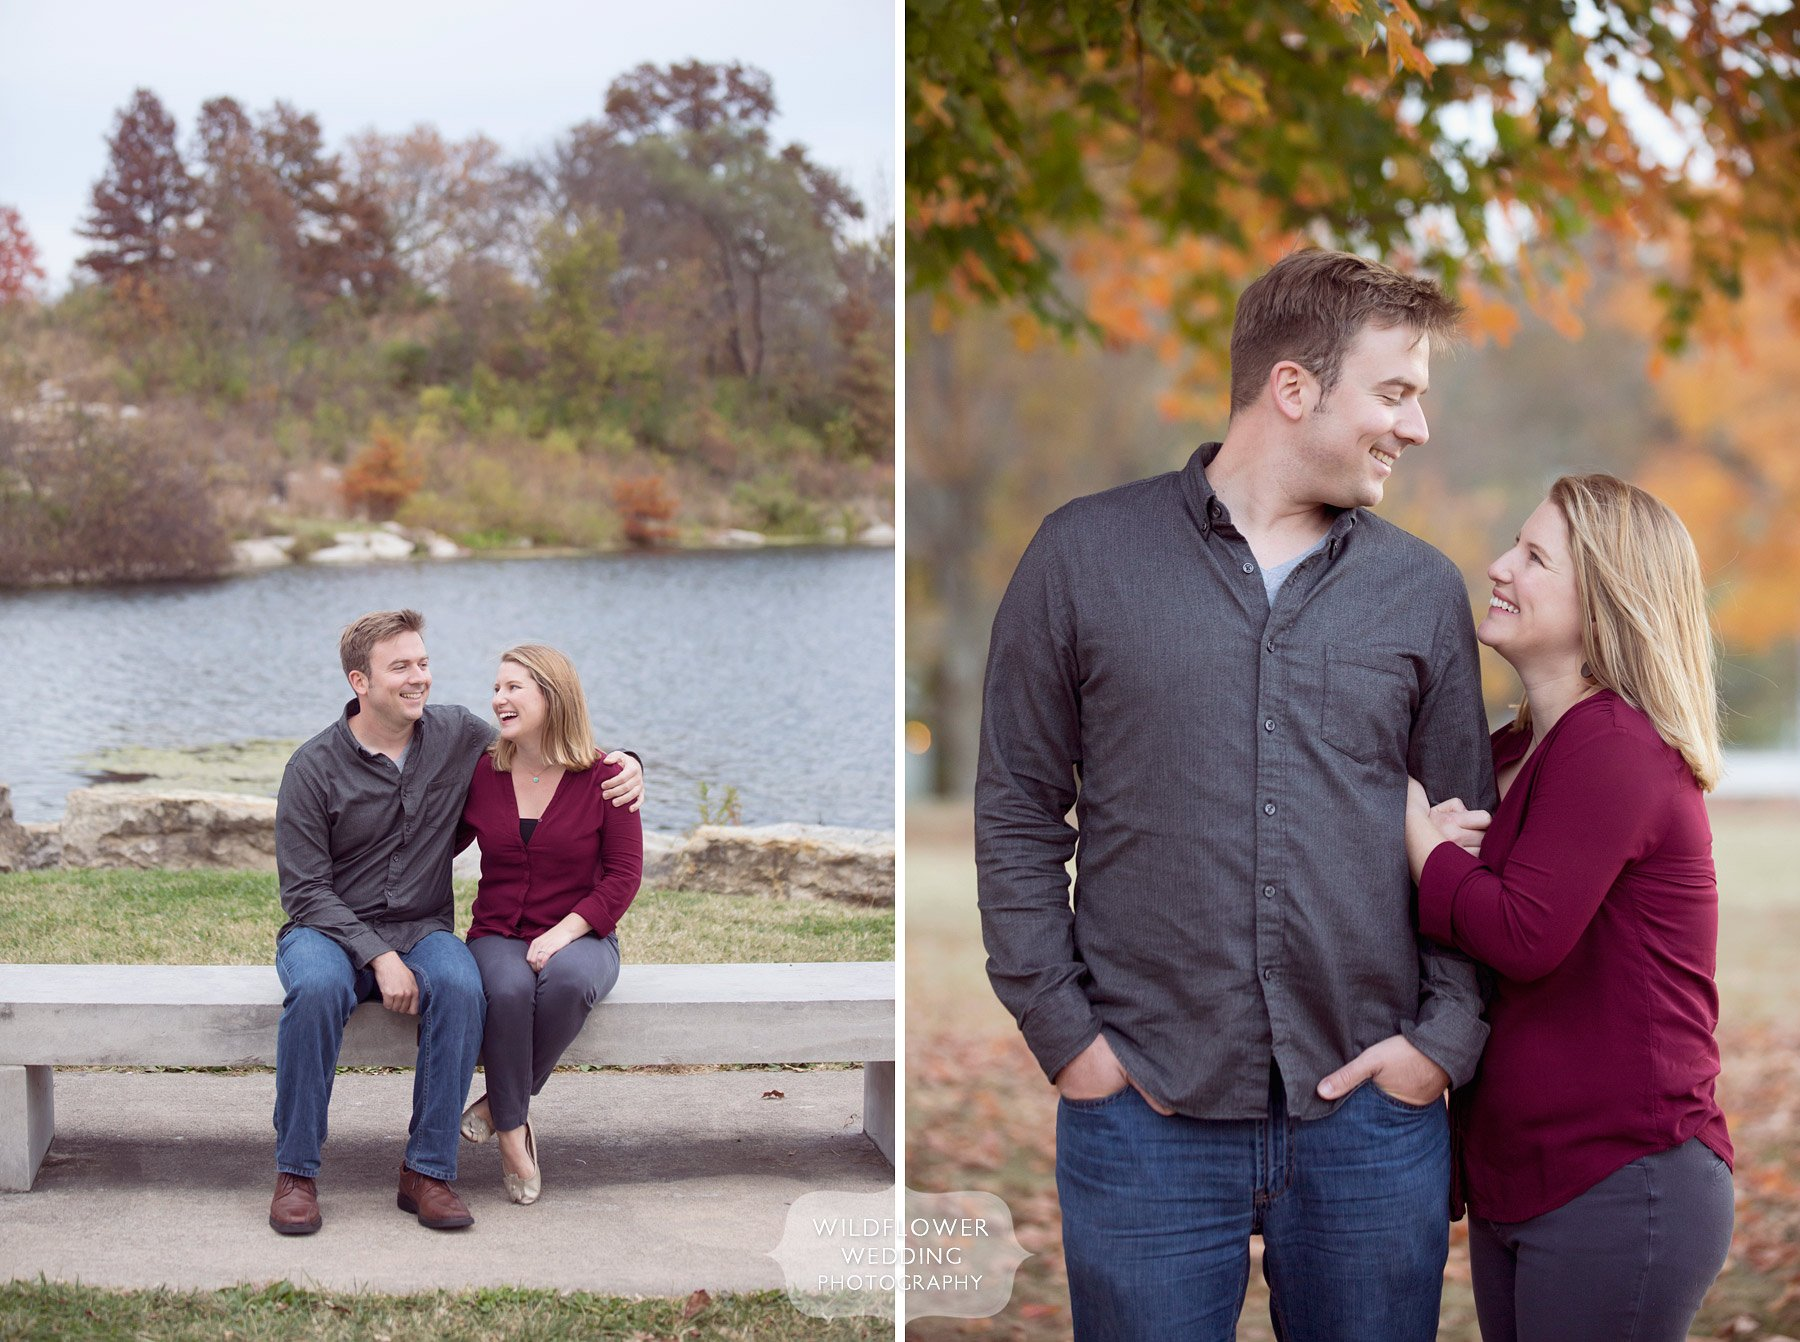 Here is a great example of a journalistic engagement photography session in Columbia, MO at Stephen's Lake Park.